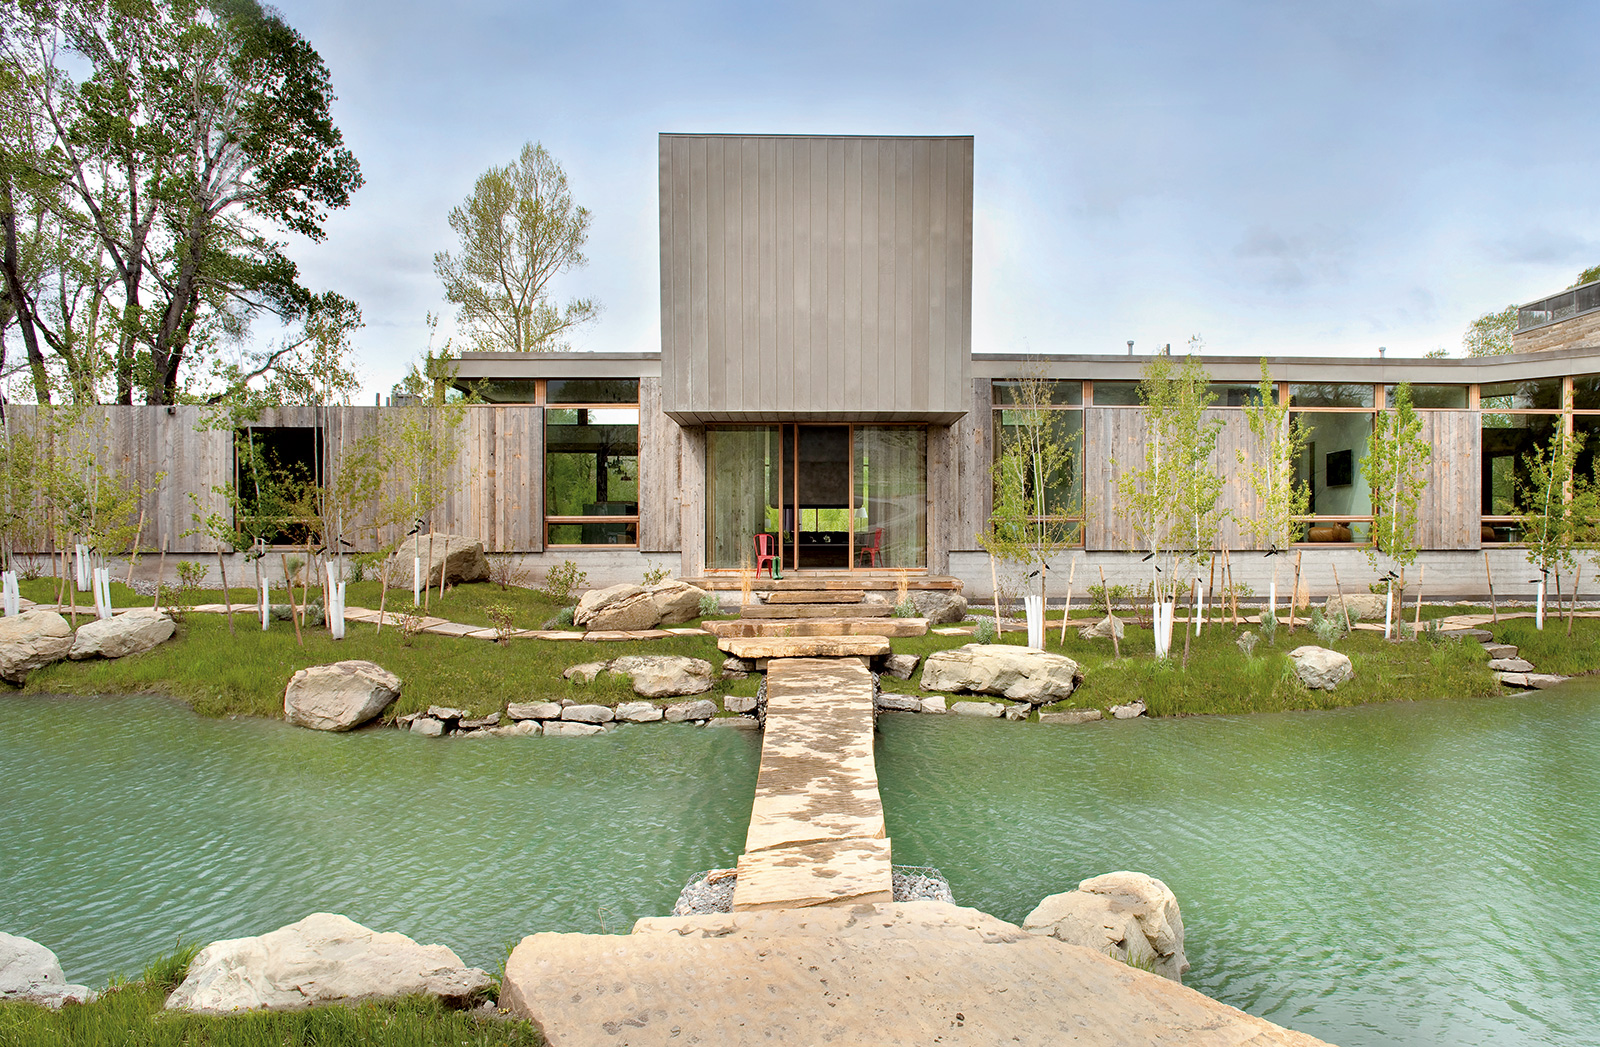 Living on water: Watershed Lodge by HUUM architecture